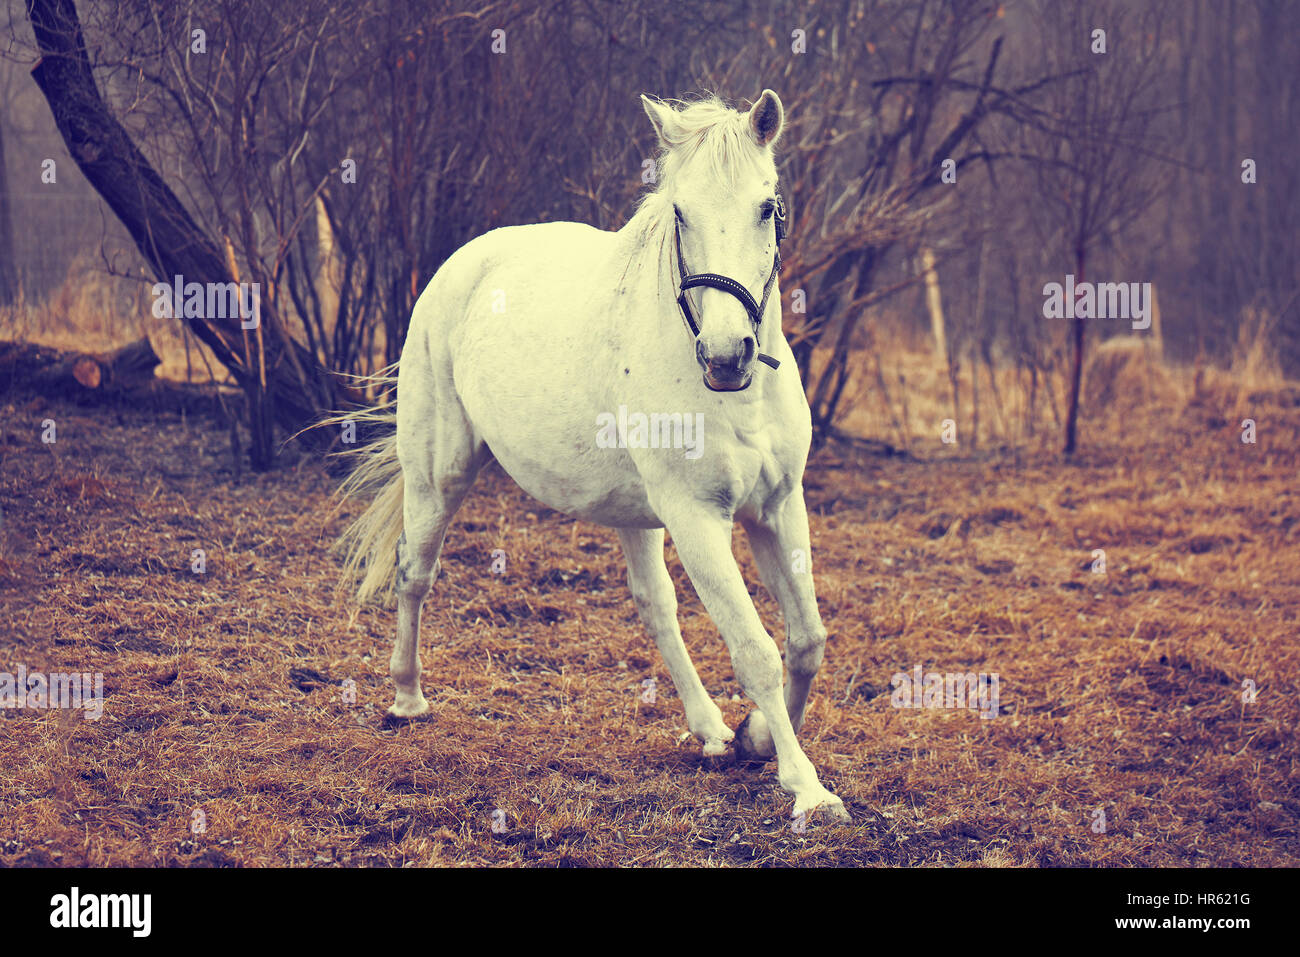 Beautiful White Horse Running Stock Photo Alamy